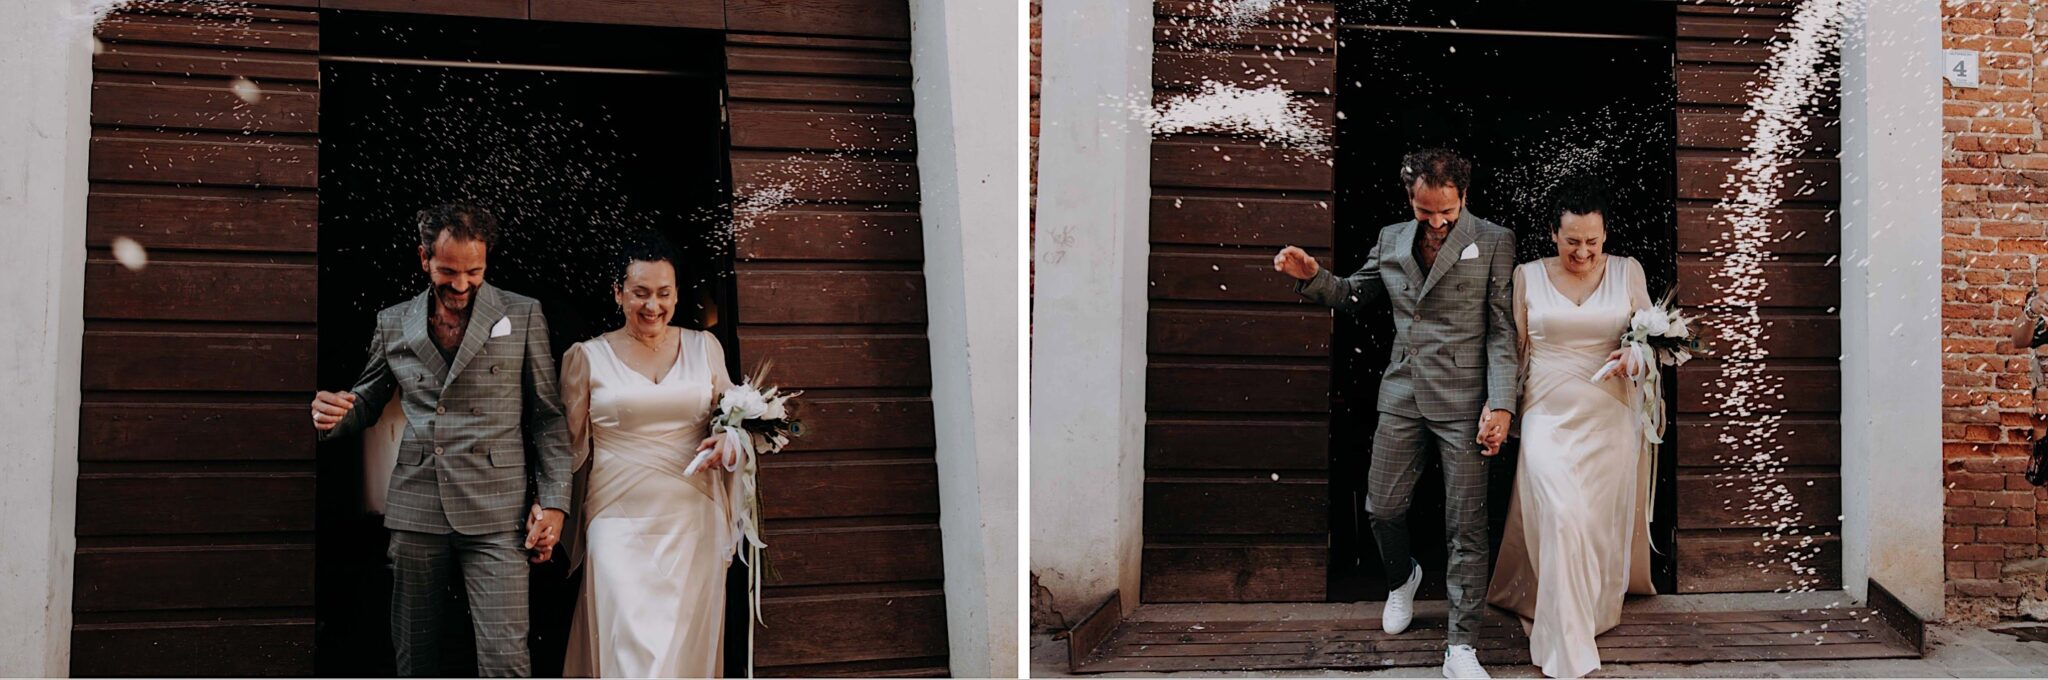 sequence wedding in Tuscany